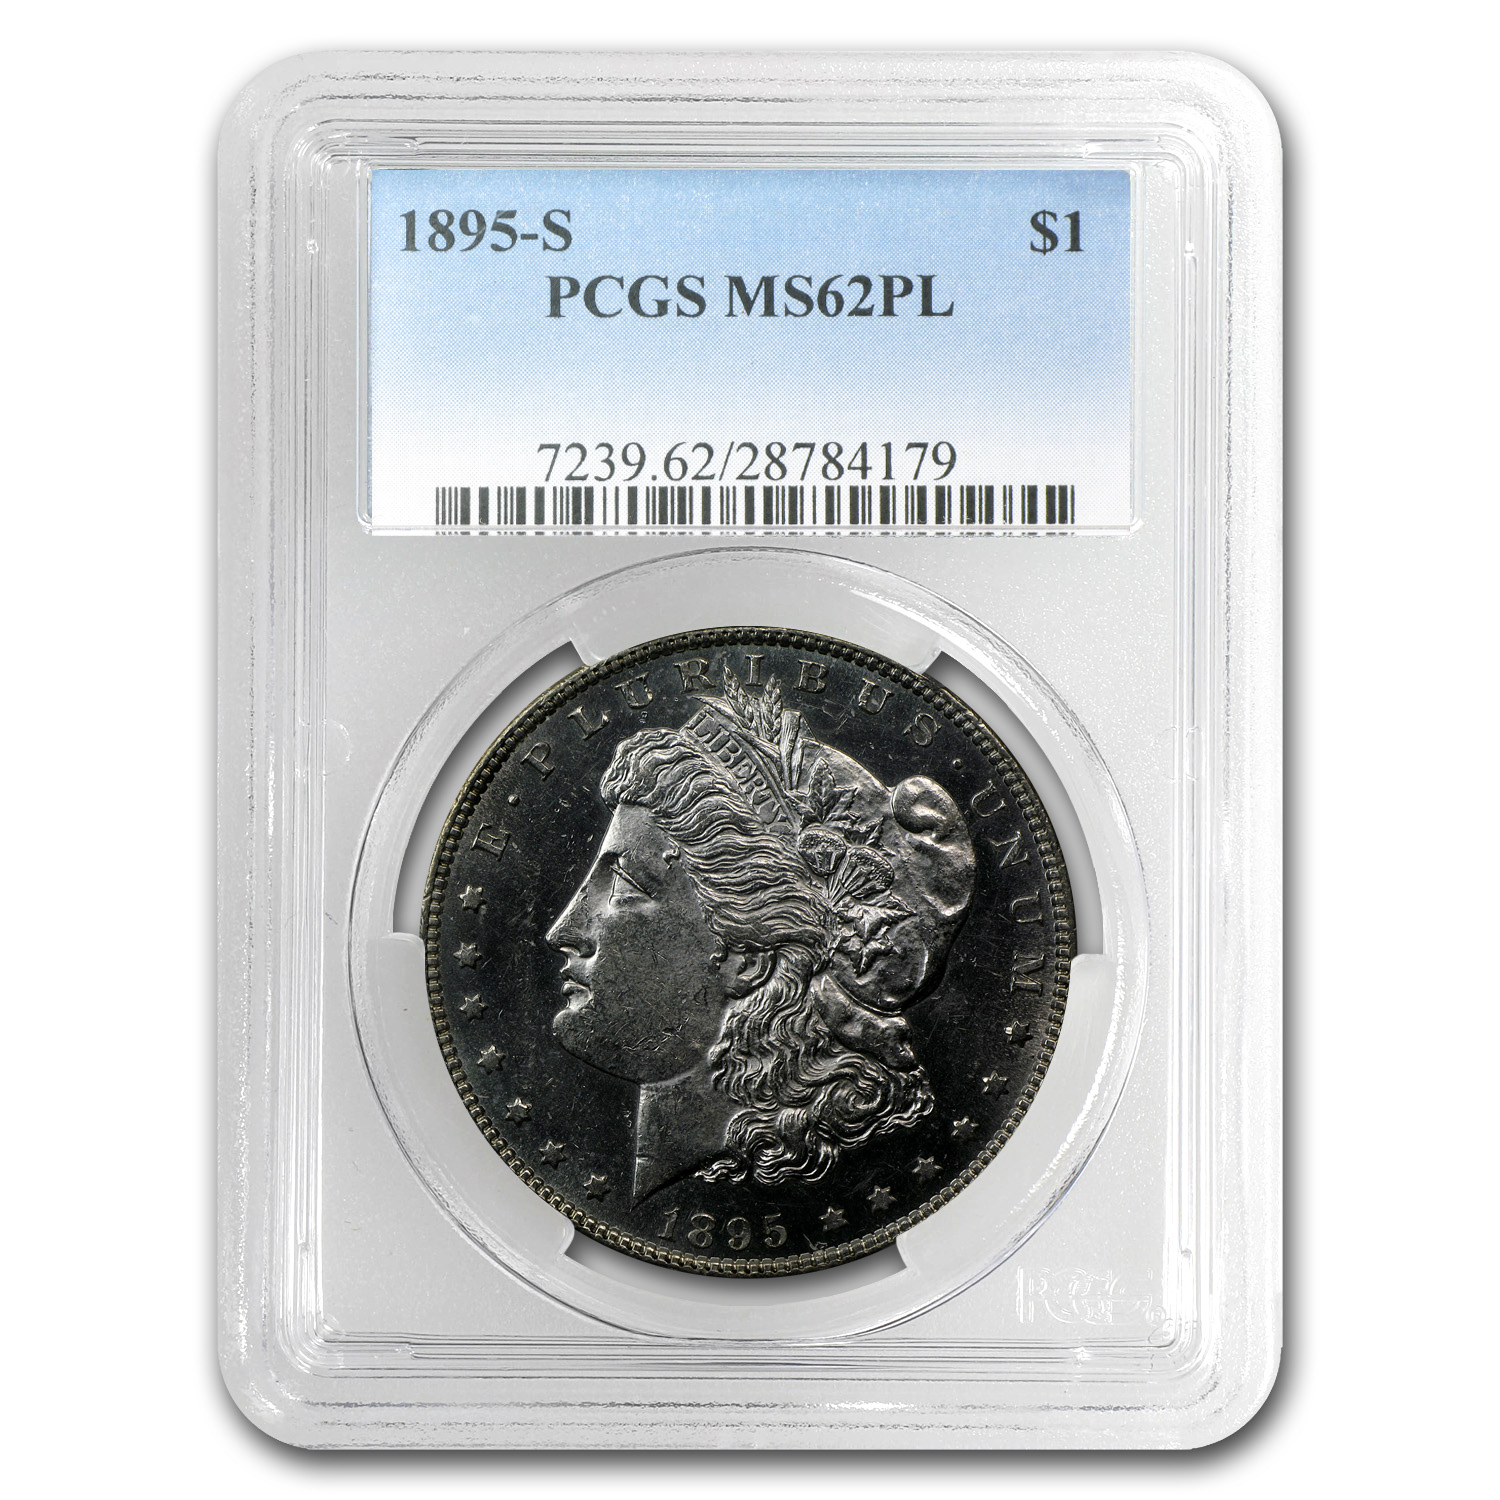 1895-S Morgan Dollar MS-62 PL Proof Like PCGS